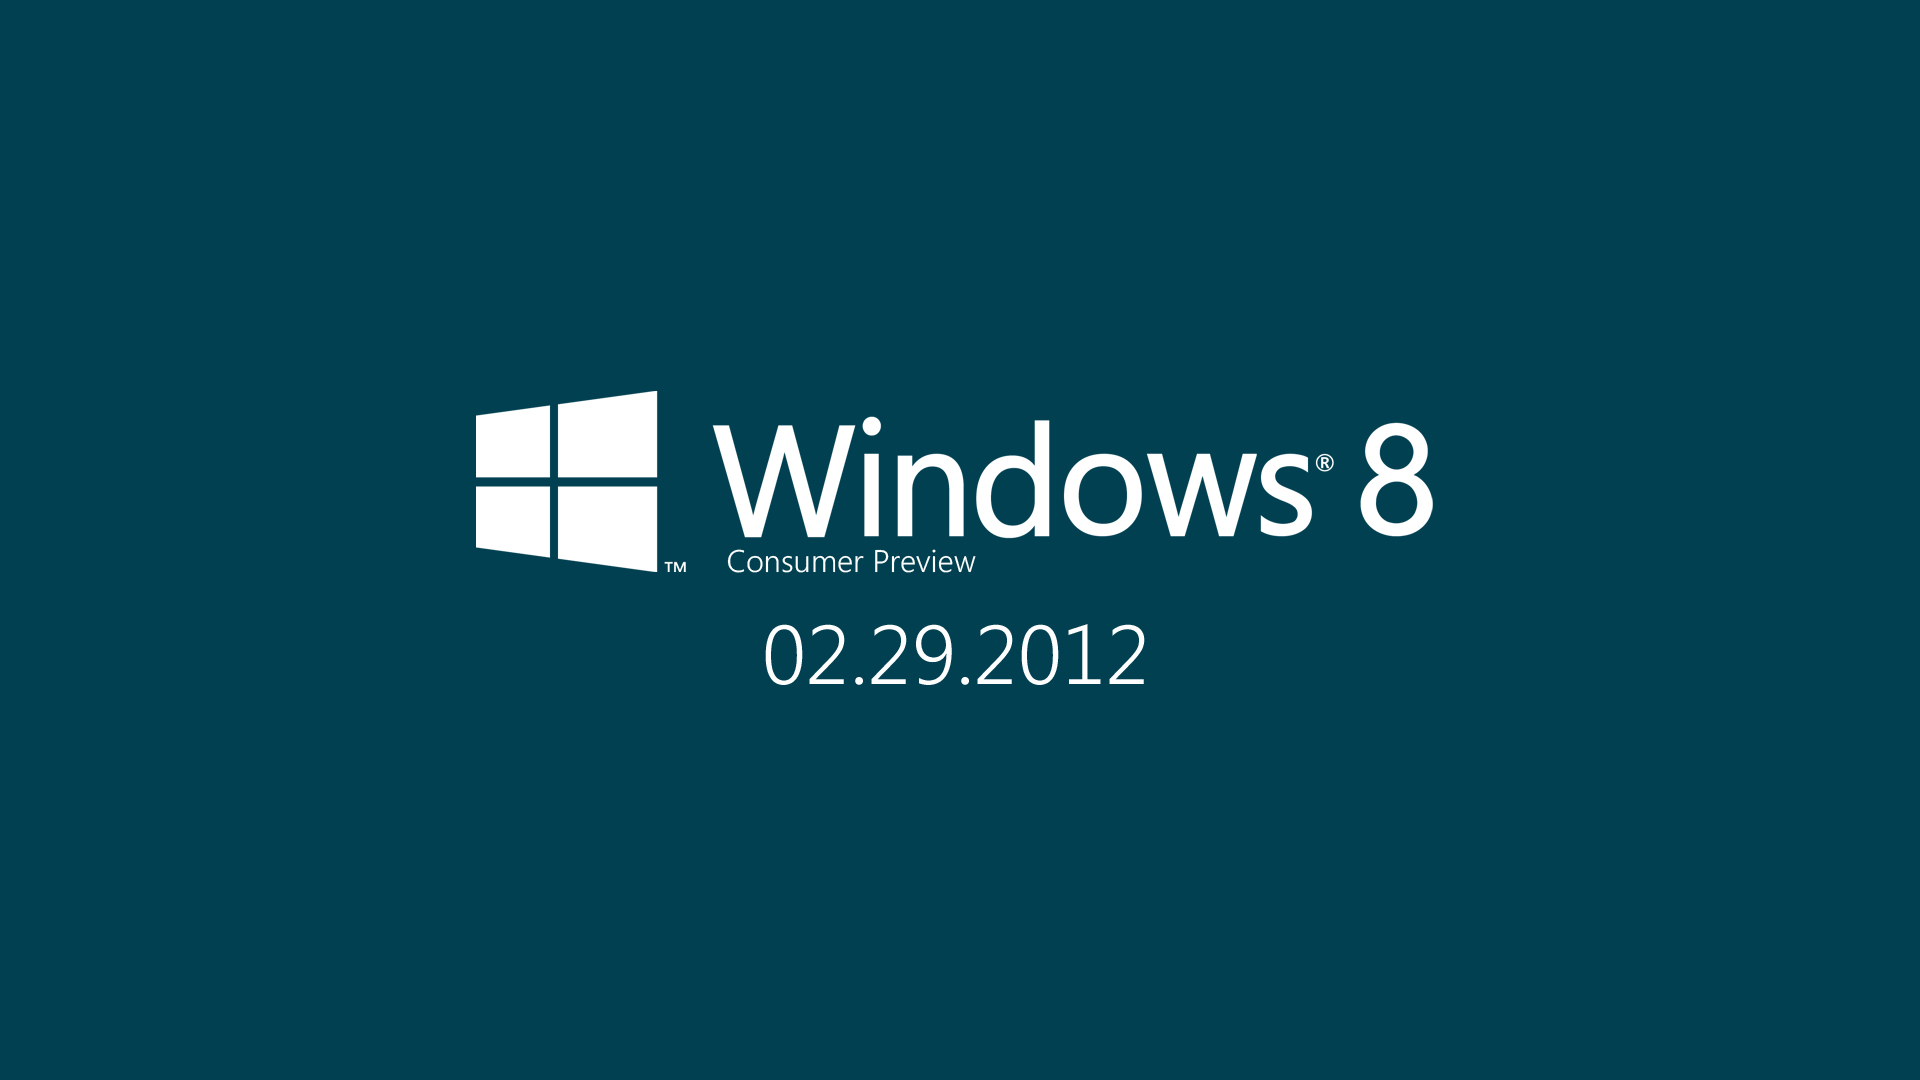 Windows 8 Consumer Preview Wallpaper by wango911 1920x1080